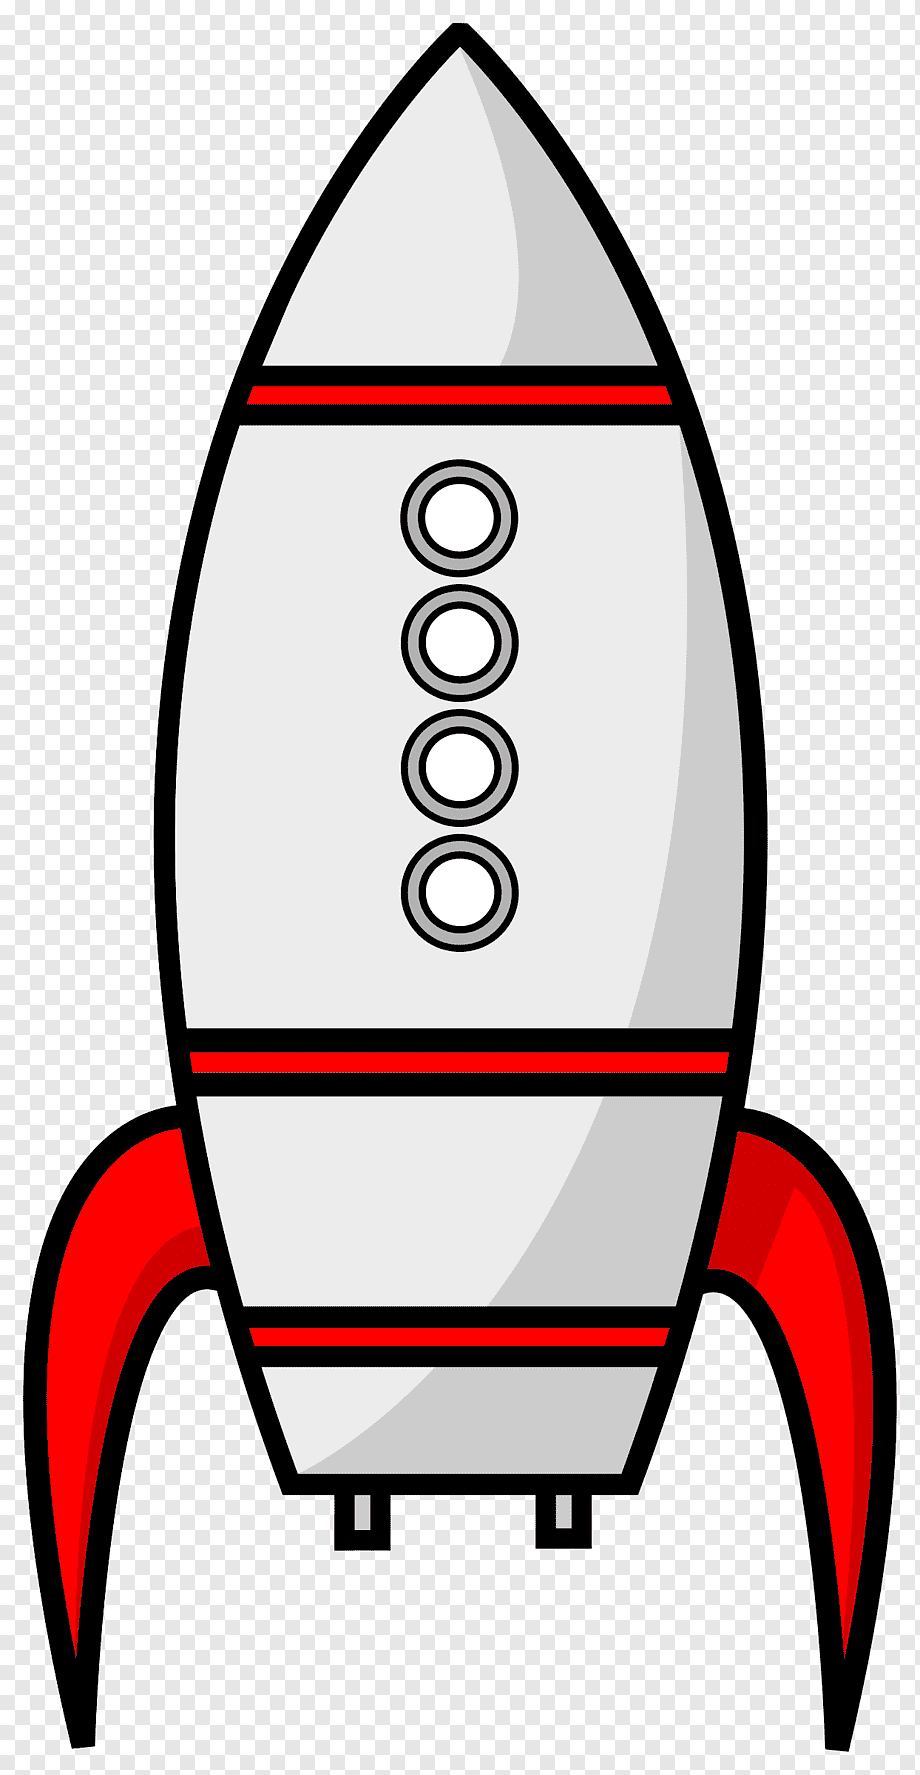 Gambar Roket Animasi : gambar, roket, animasi, Cartoon, Rocket, Images, PNGWing